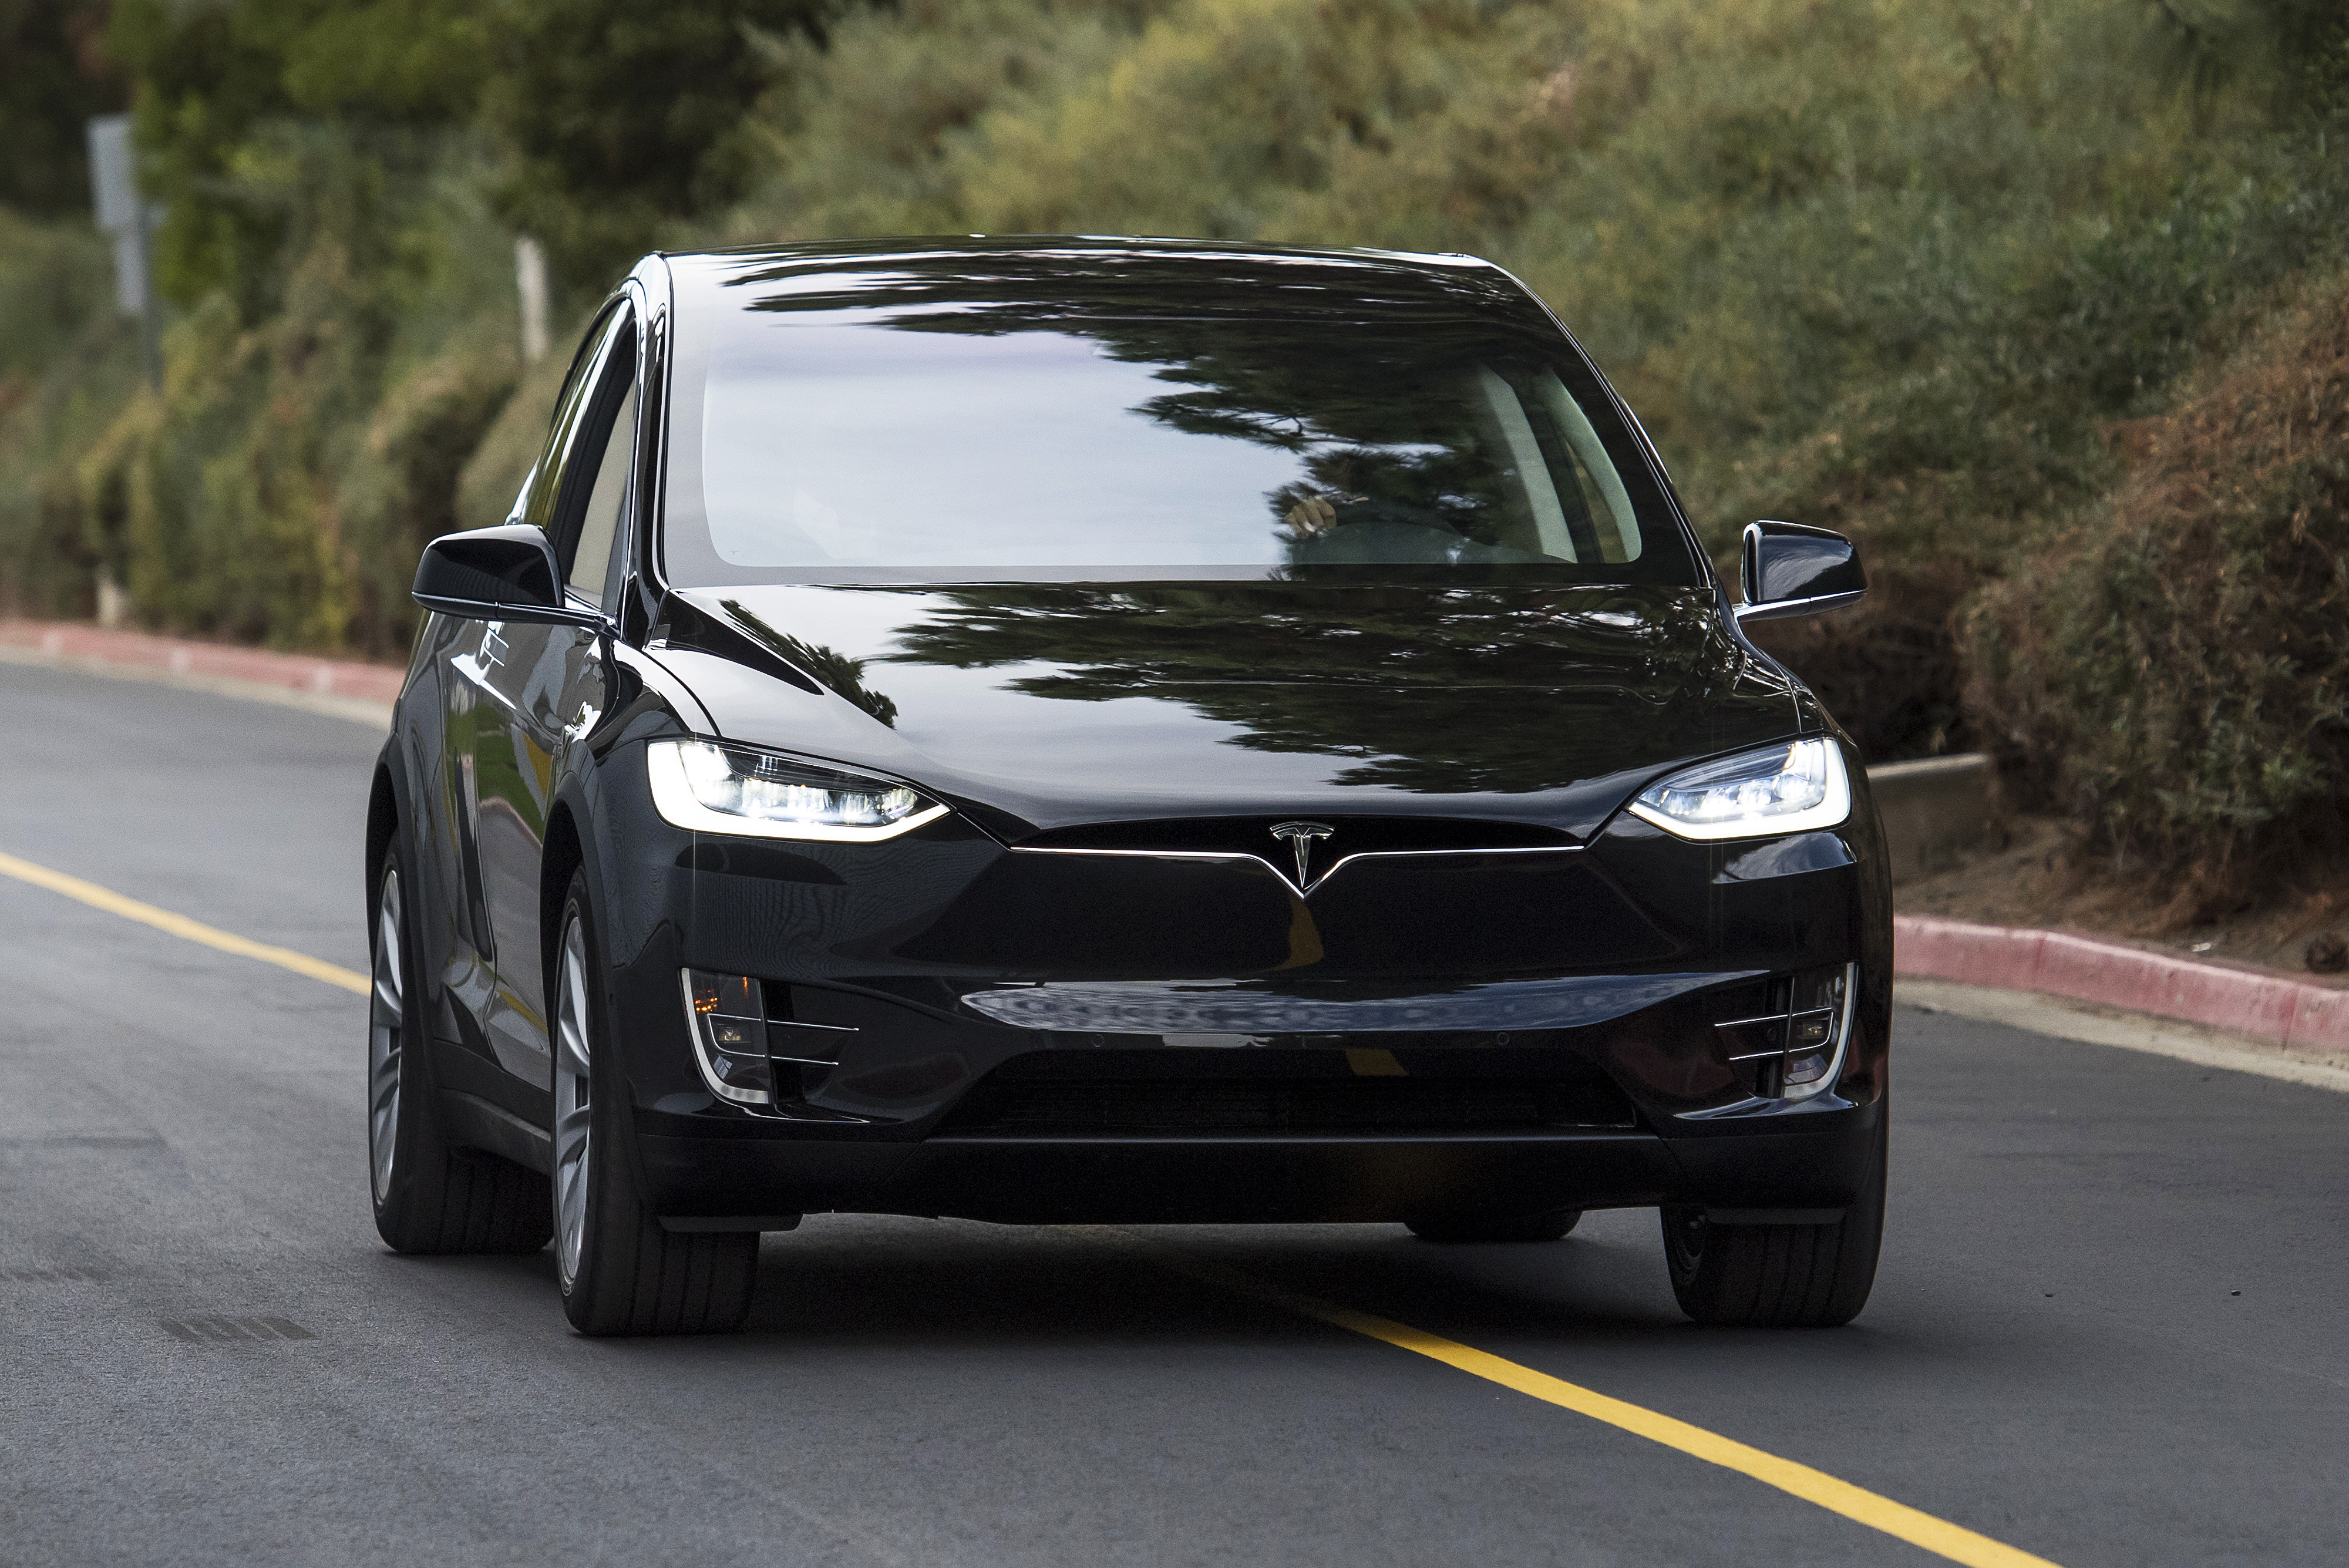 The Tesla Motors Inc. Model X sport utility vehicle (SUV) is driven during an event in Fremont, California, U.S., on Tuesday, Sept. 29, 2015.